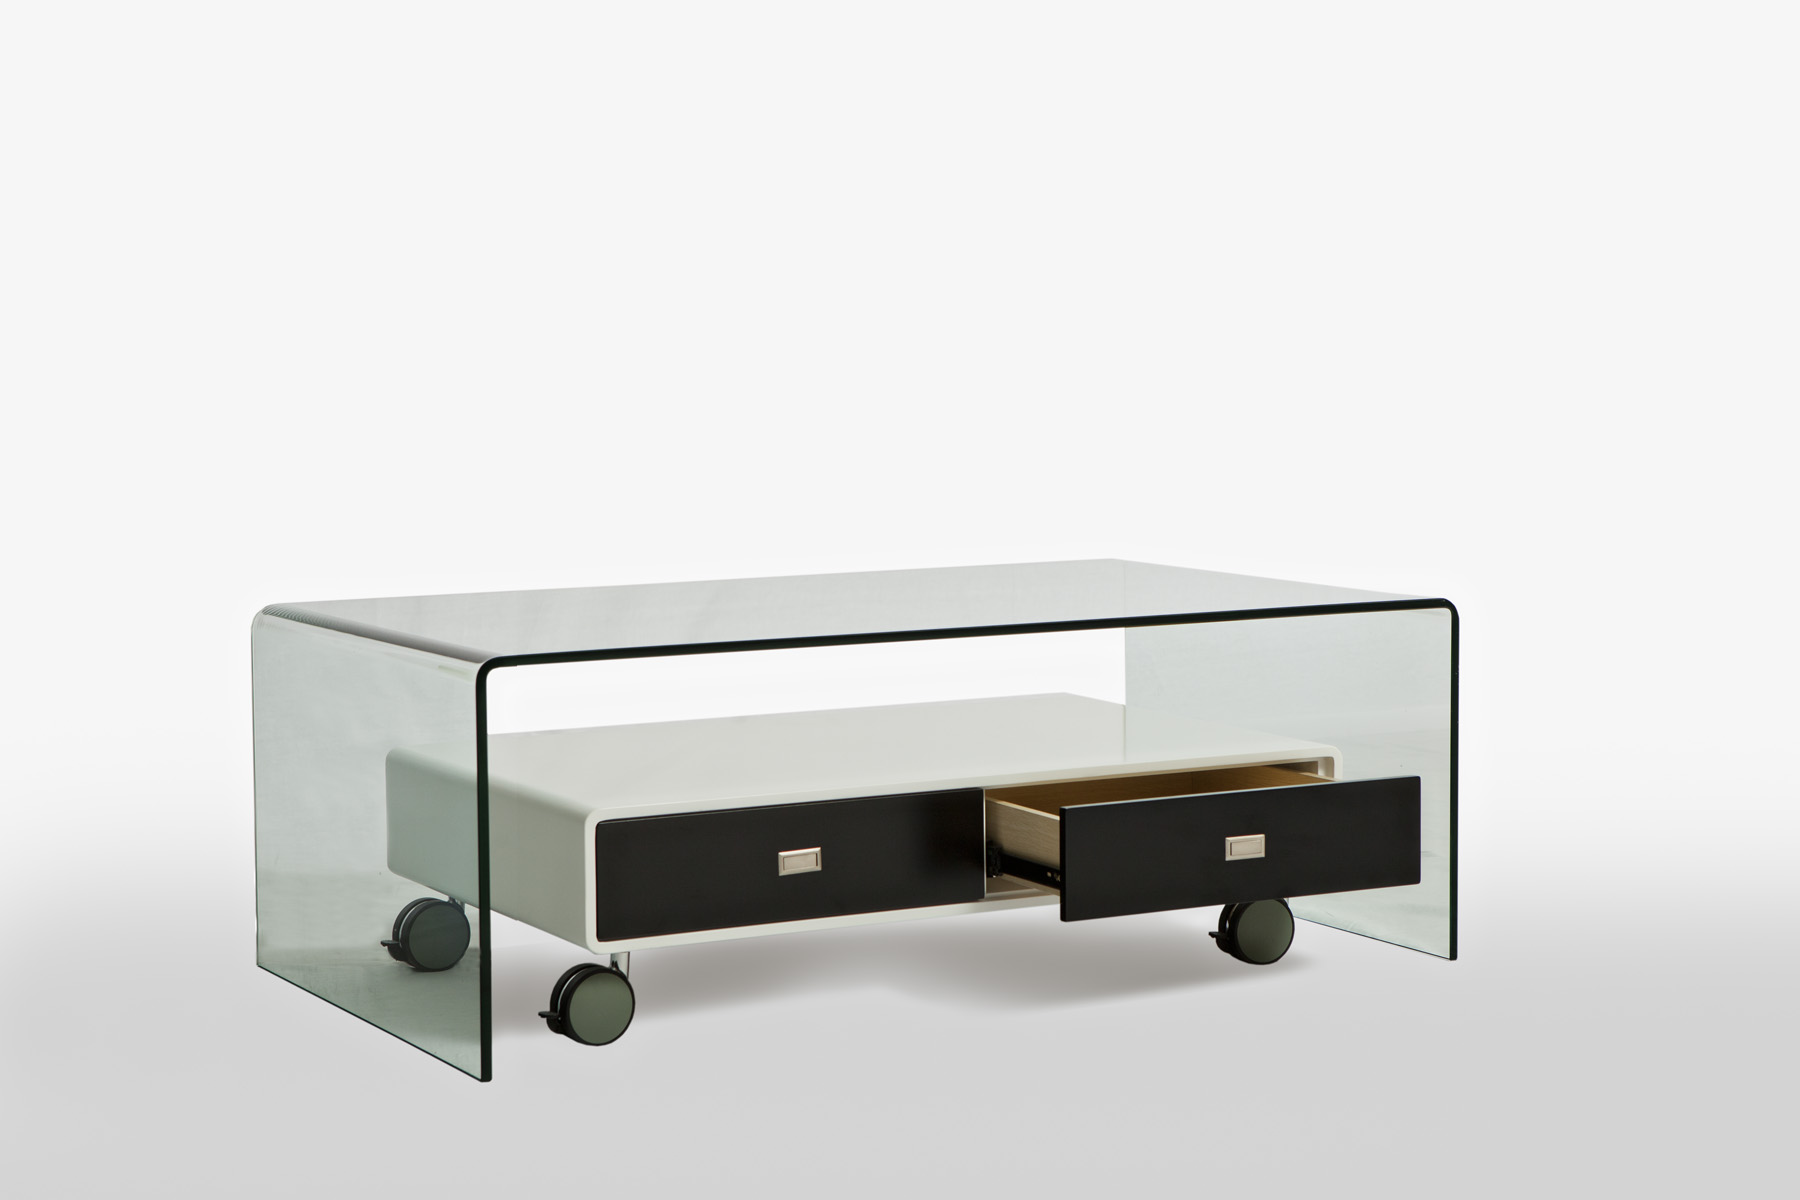 Glass Coffee Table With Drawers Glass Top Coffee Table  : mg9212 3548copy from honansantiques.com size 1800 x 1200 jpeg 143kB